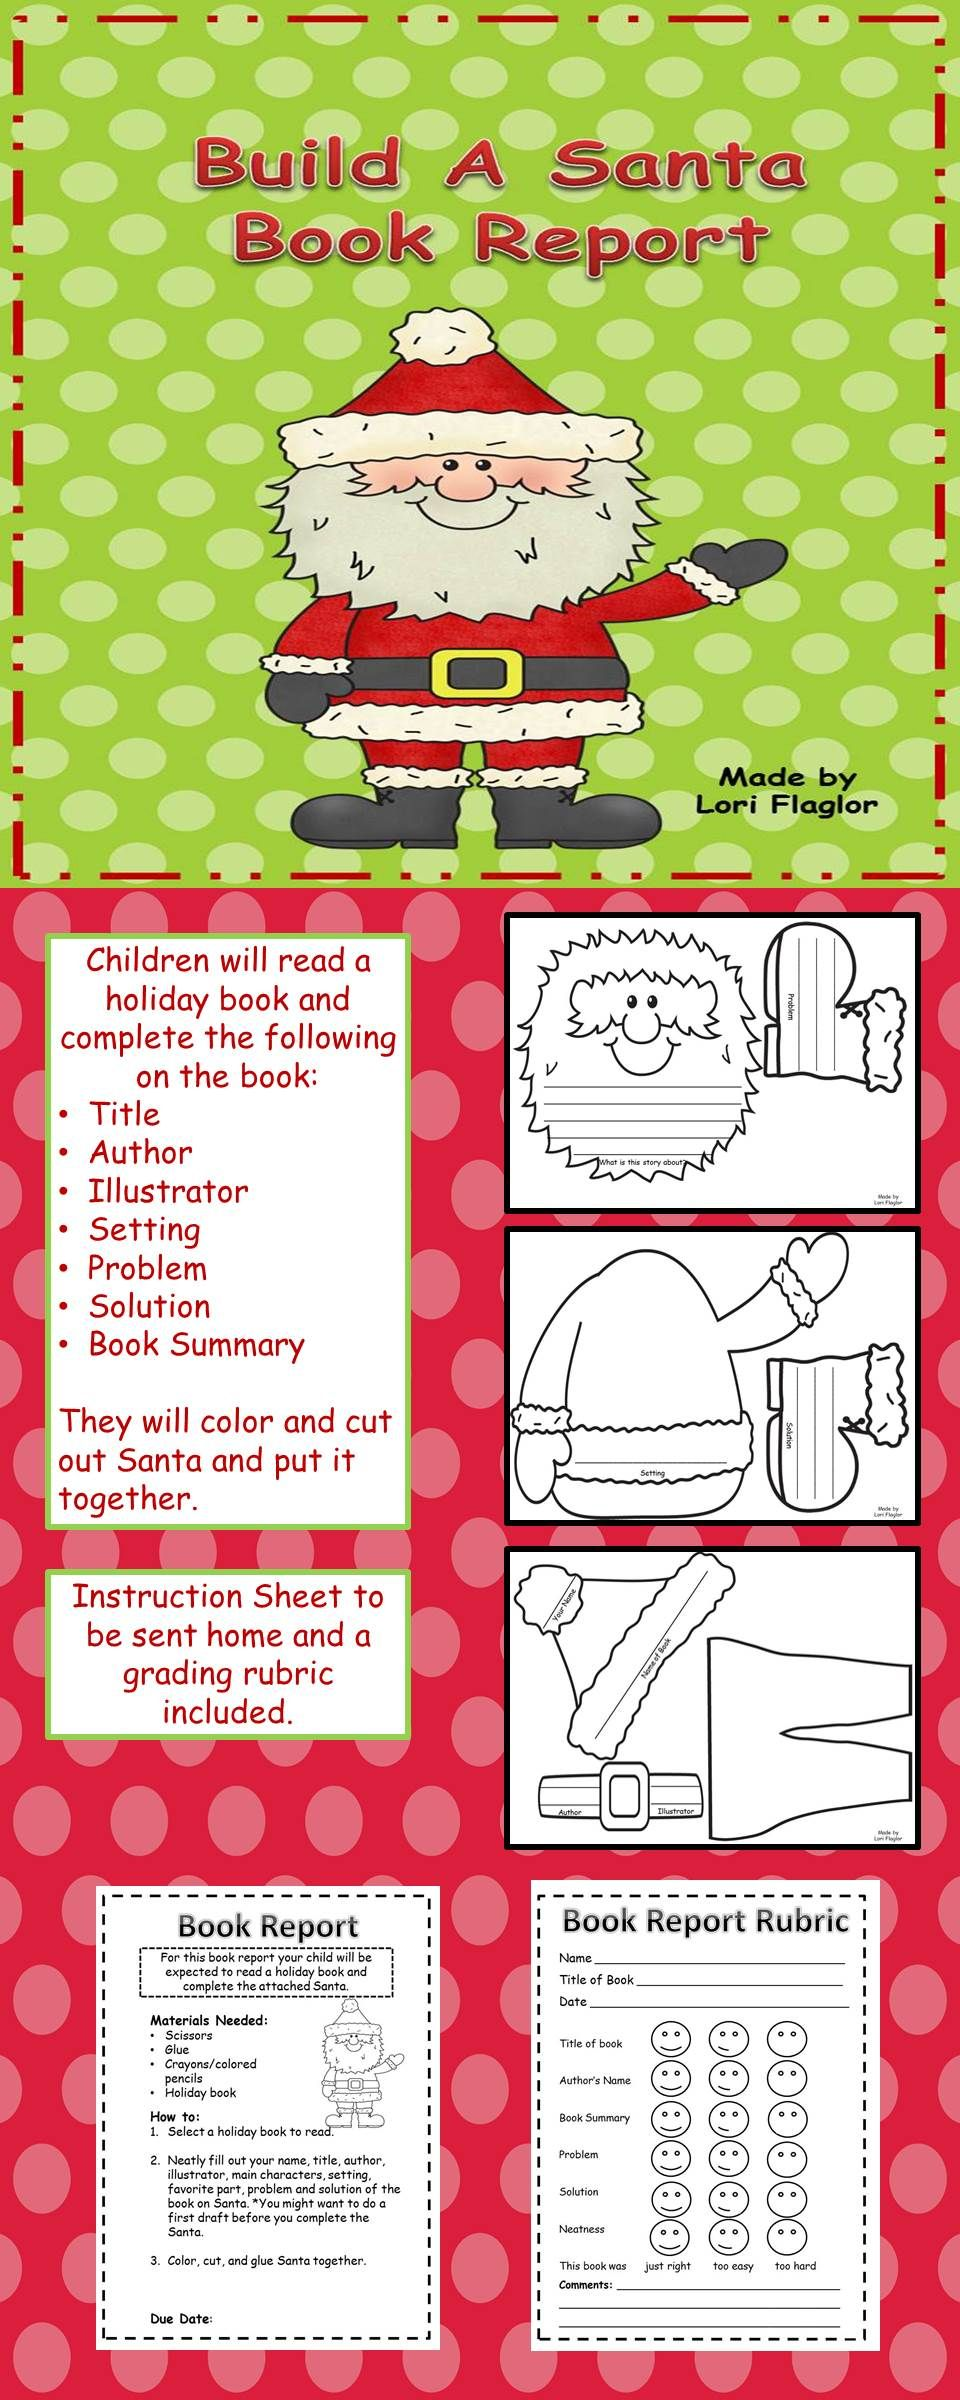 book report in a bag Irubric mx2635a: attached to the bag is the directions to create your book report in a bag, as well as the bag you will be using follow the directions, and the rubric provided to assist you in completing the book in a bag report.